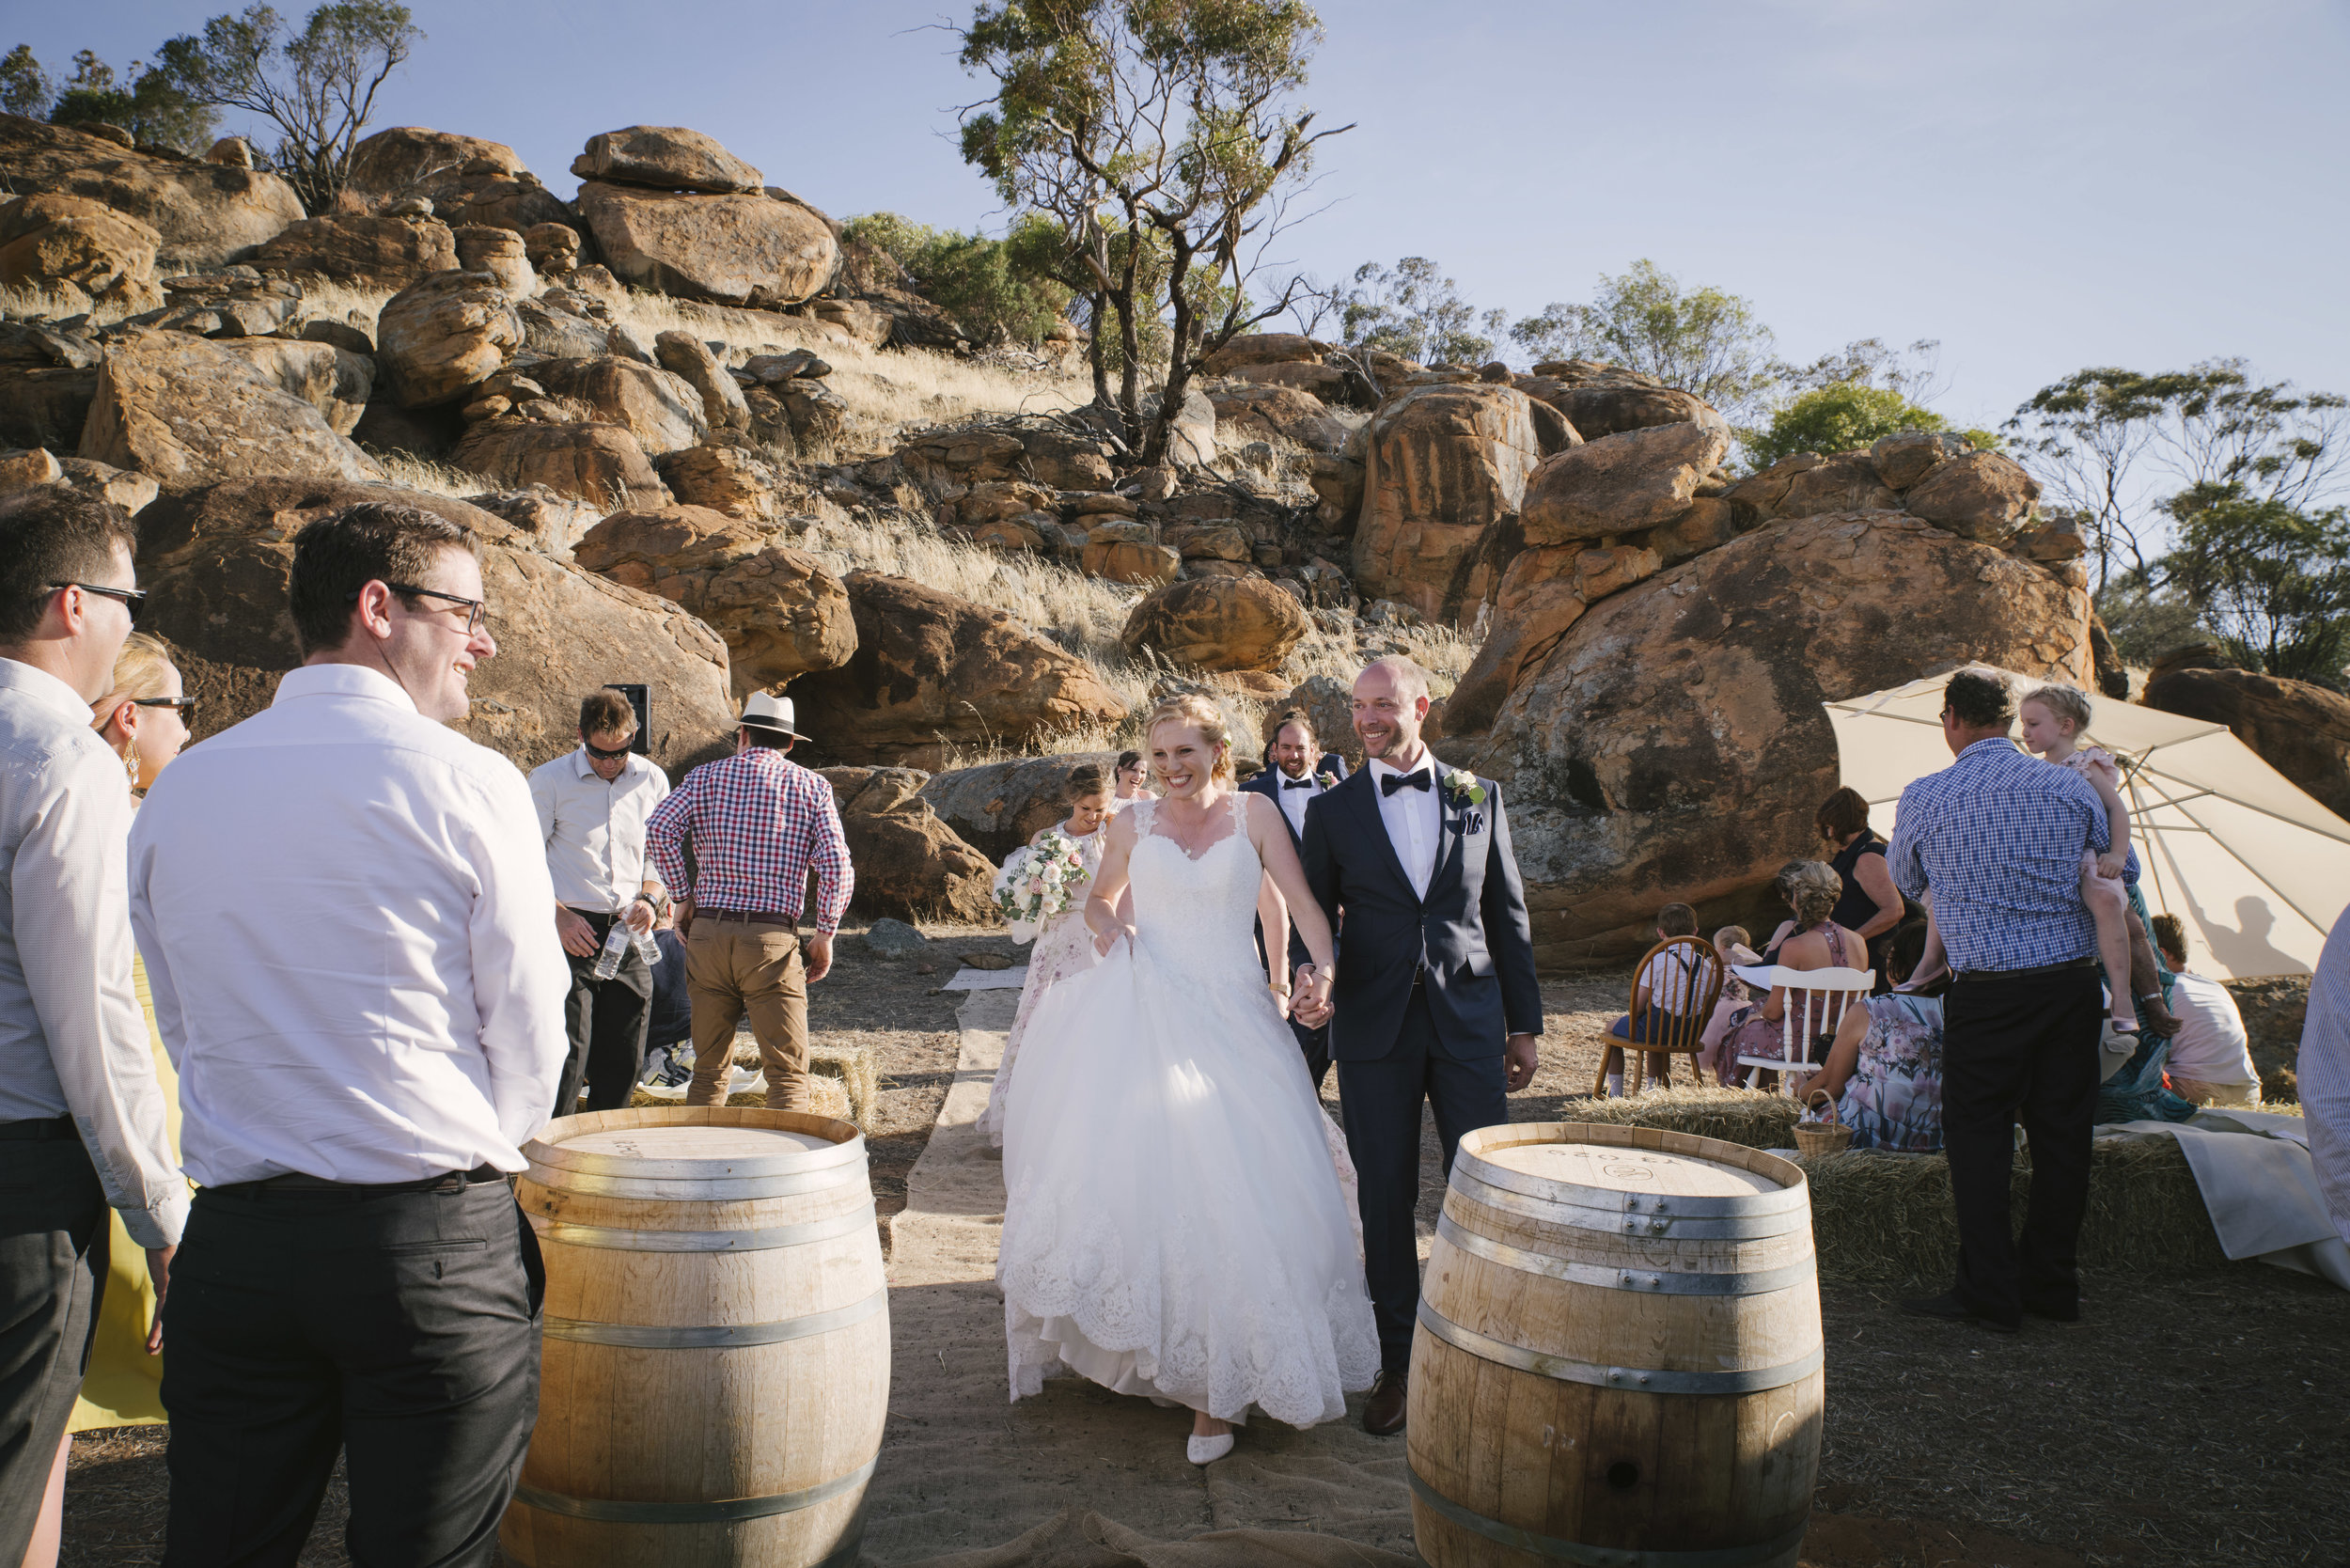 Wheatbelt Merredin Rustic Rural Farm Wedding (29).jpg